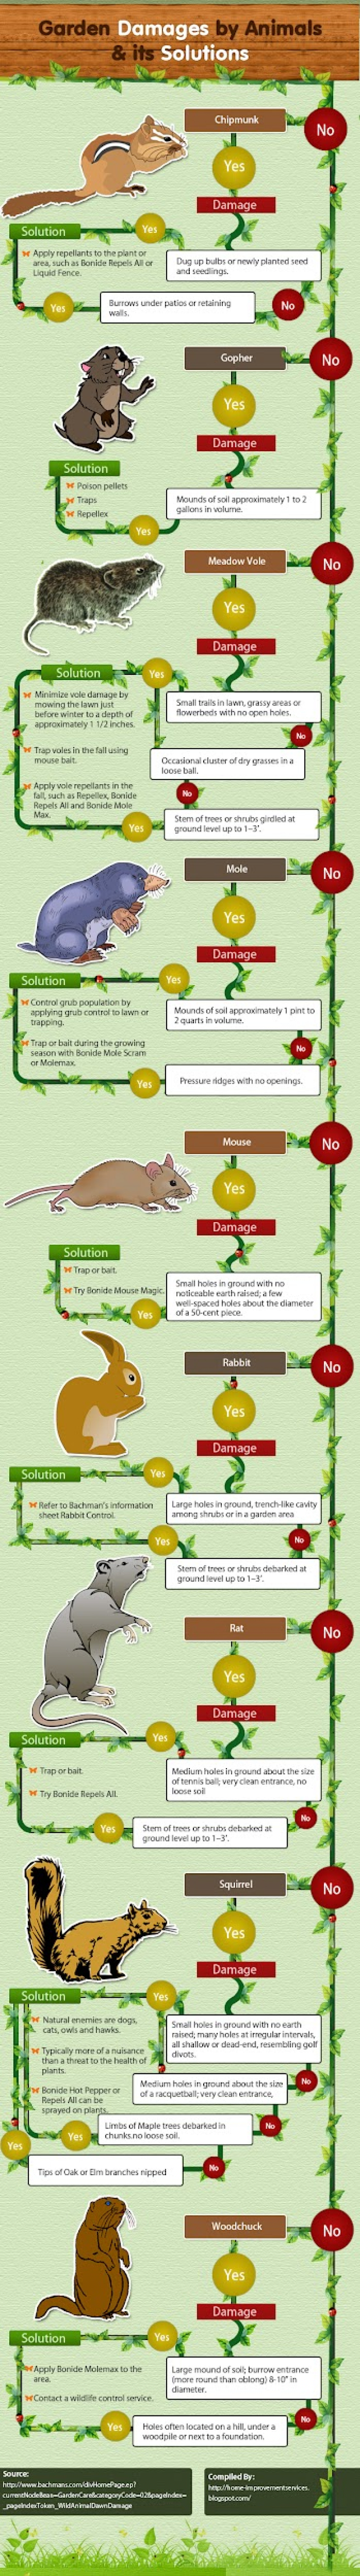 Garden Damages by Animals  Infographic